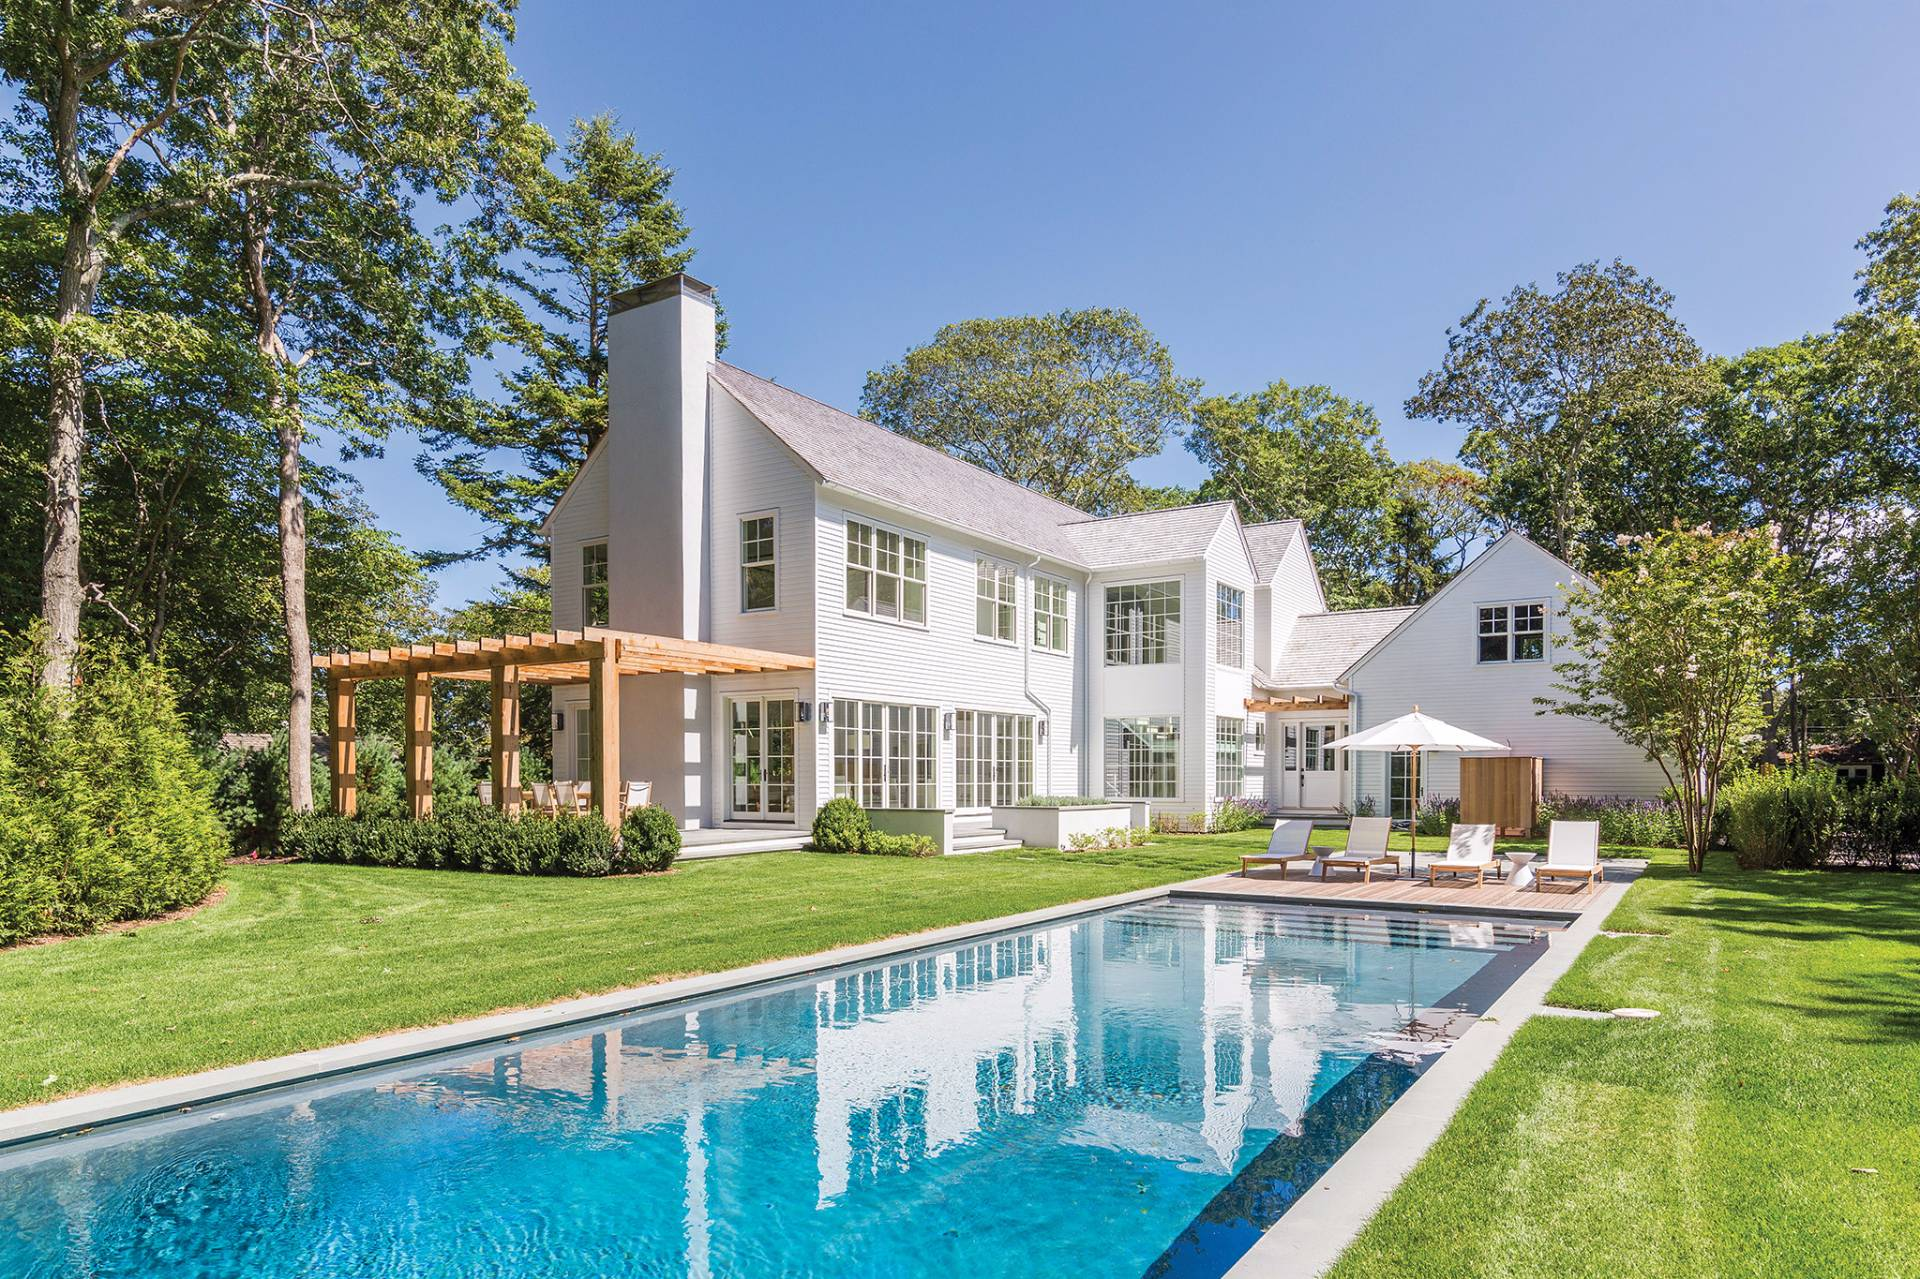 Single Family Home for Sale at Timeless Elegance- Eh Village Fringe 51 Miller Lane West, East Hampton, New York